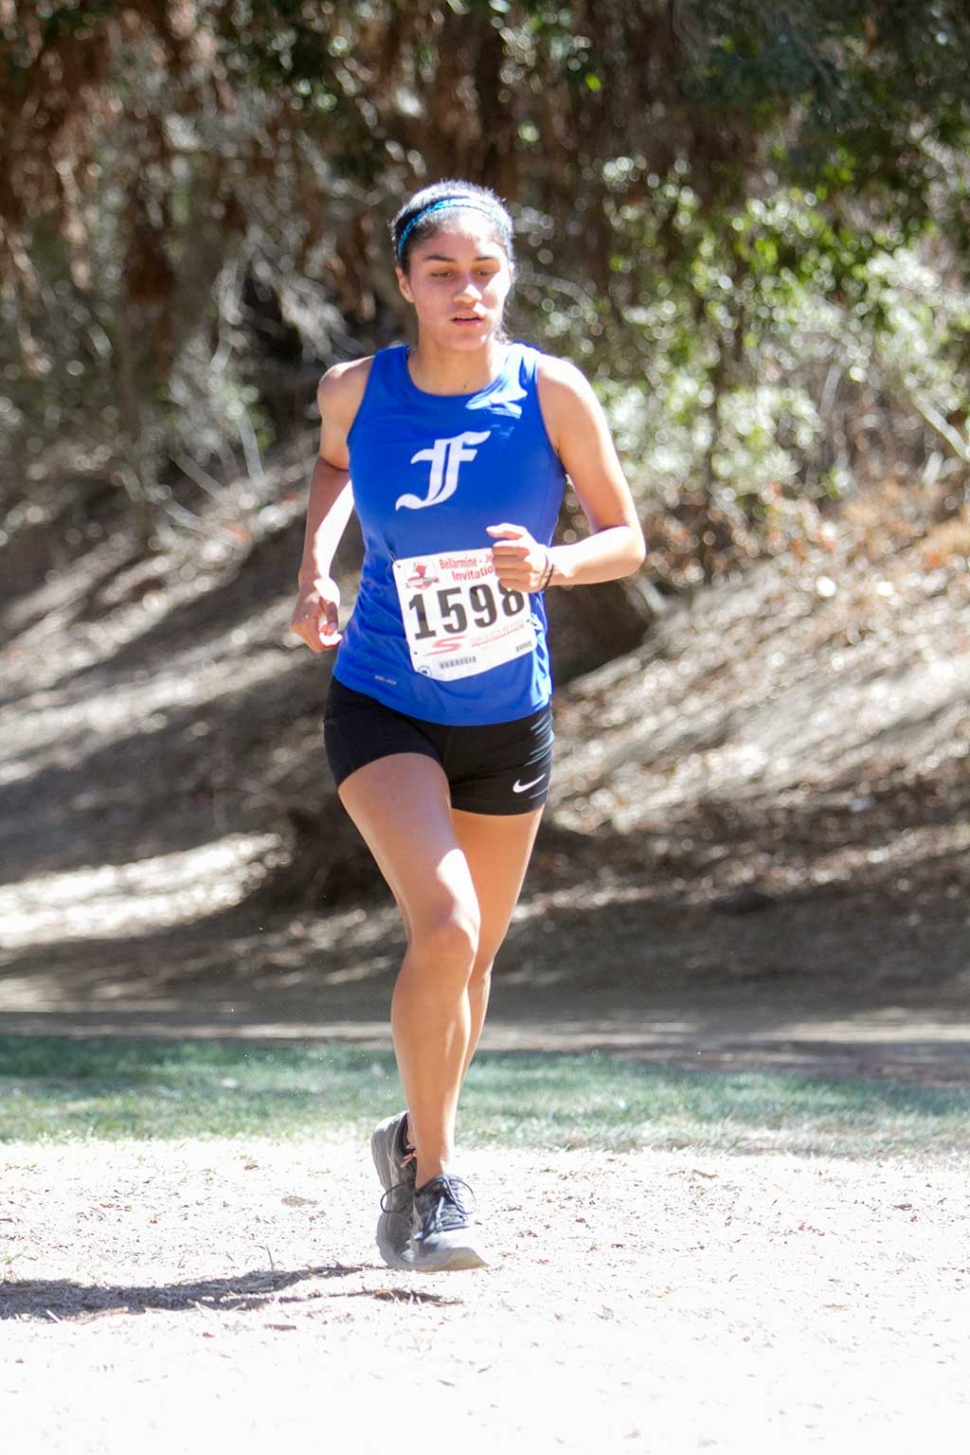 Fillmore High Cross Country's Andrea Marruffo wins the girls frosh soph race at the Bellamarine Jefferson Invitational.